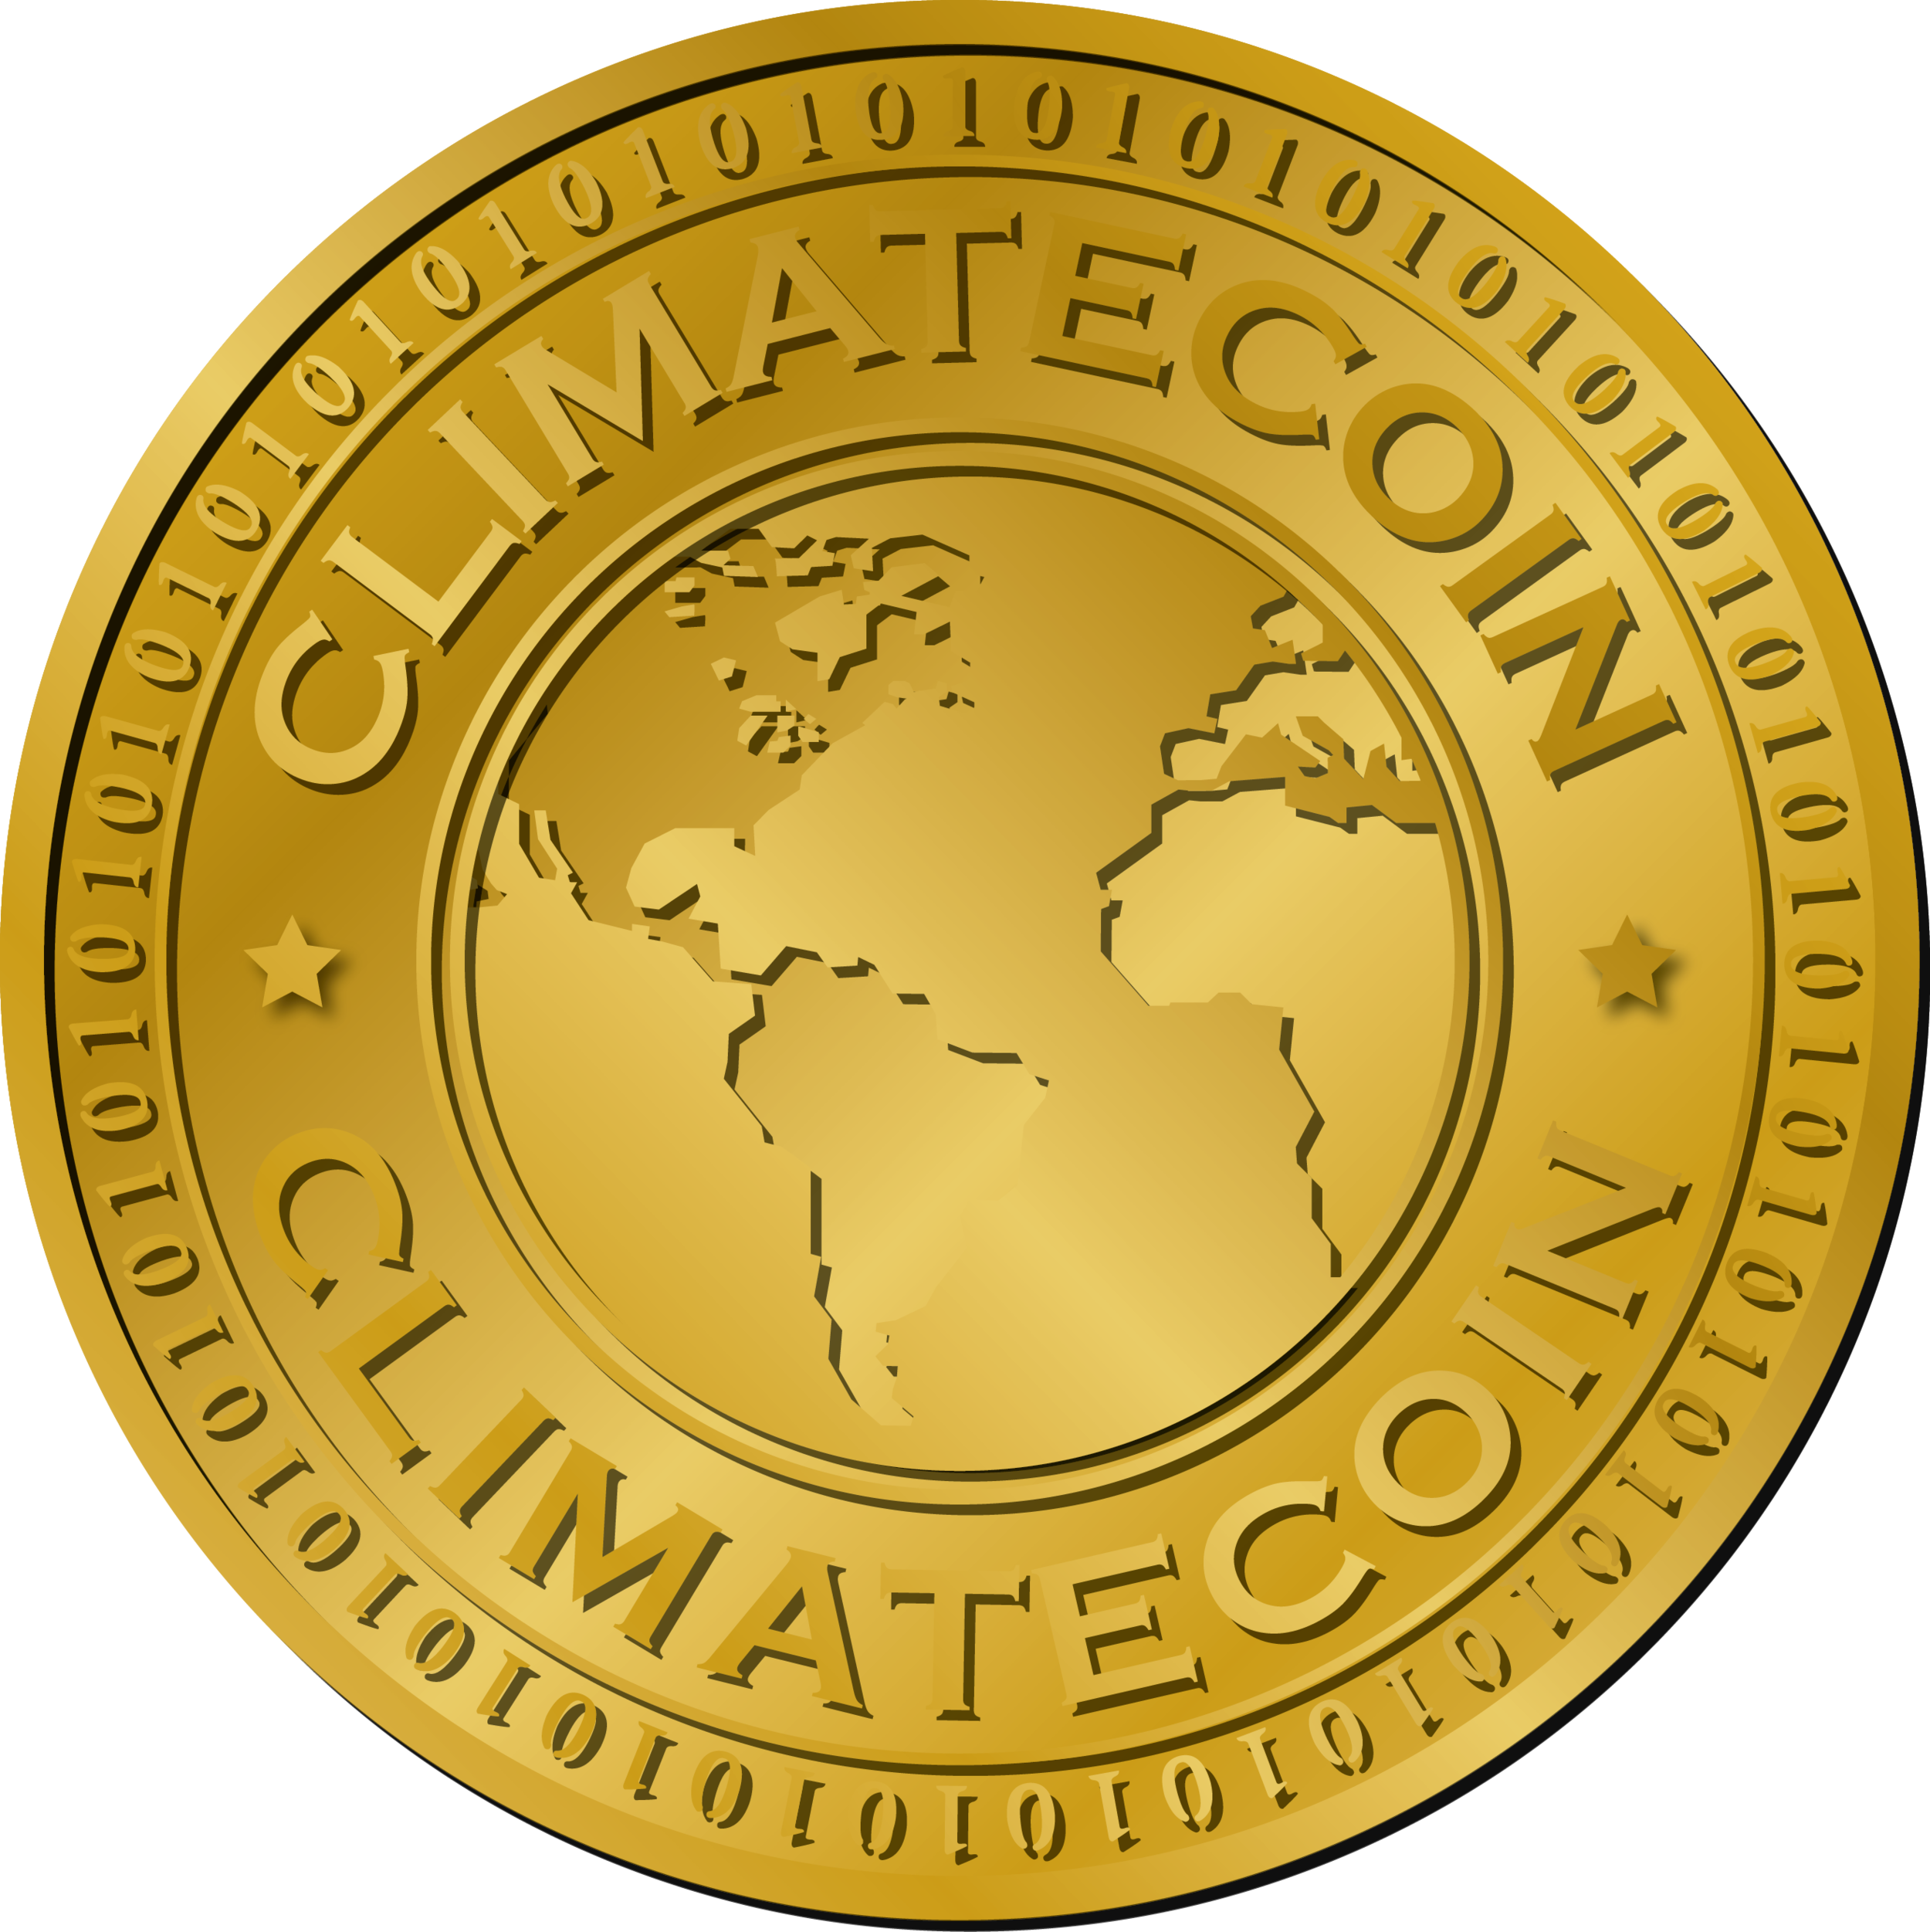 20% Discount      if investing before October 23.  - Net Zero Enterprises can offer a 20% discount on the ICO and investment into CLIMATECOIN, wheather it is just an investment in the digital currency, or if it is an investment into Net Zero Enterprises that is paid with CLIMATECOIN.